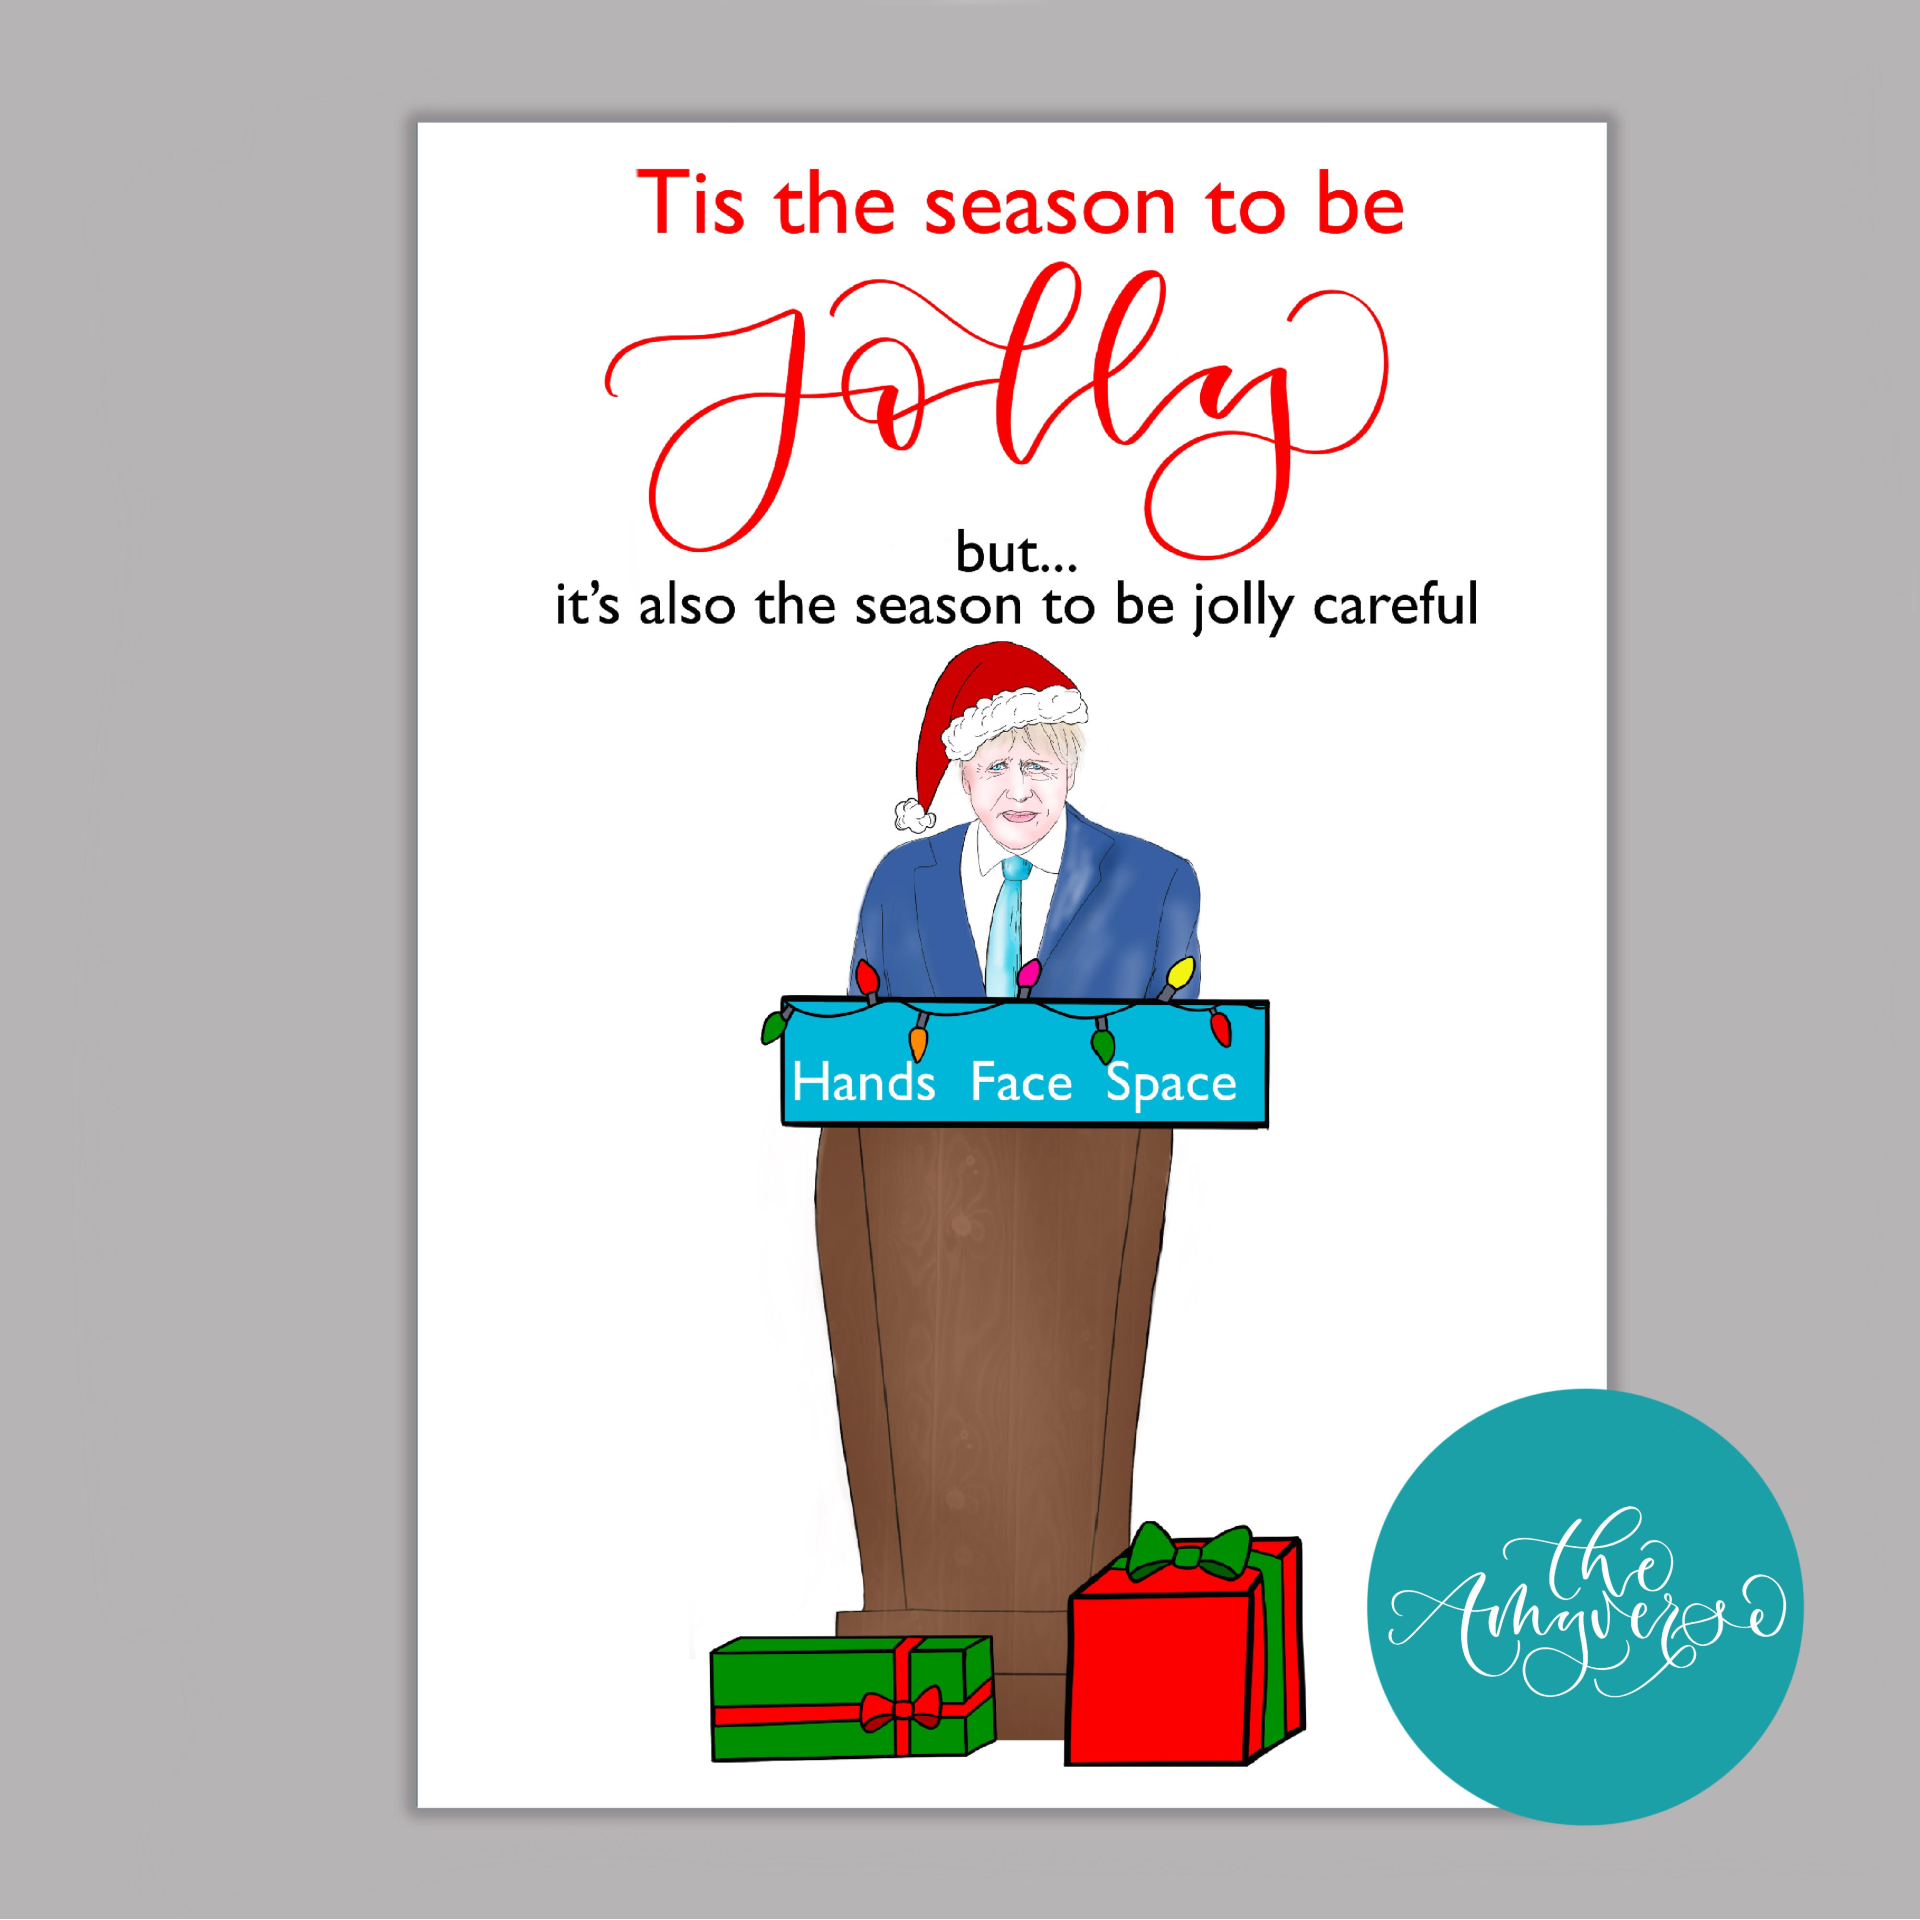 One of the Christmas cards created and sold by small business The Amyverse